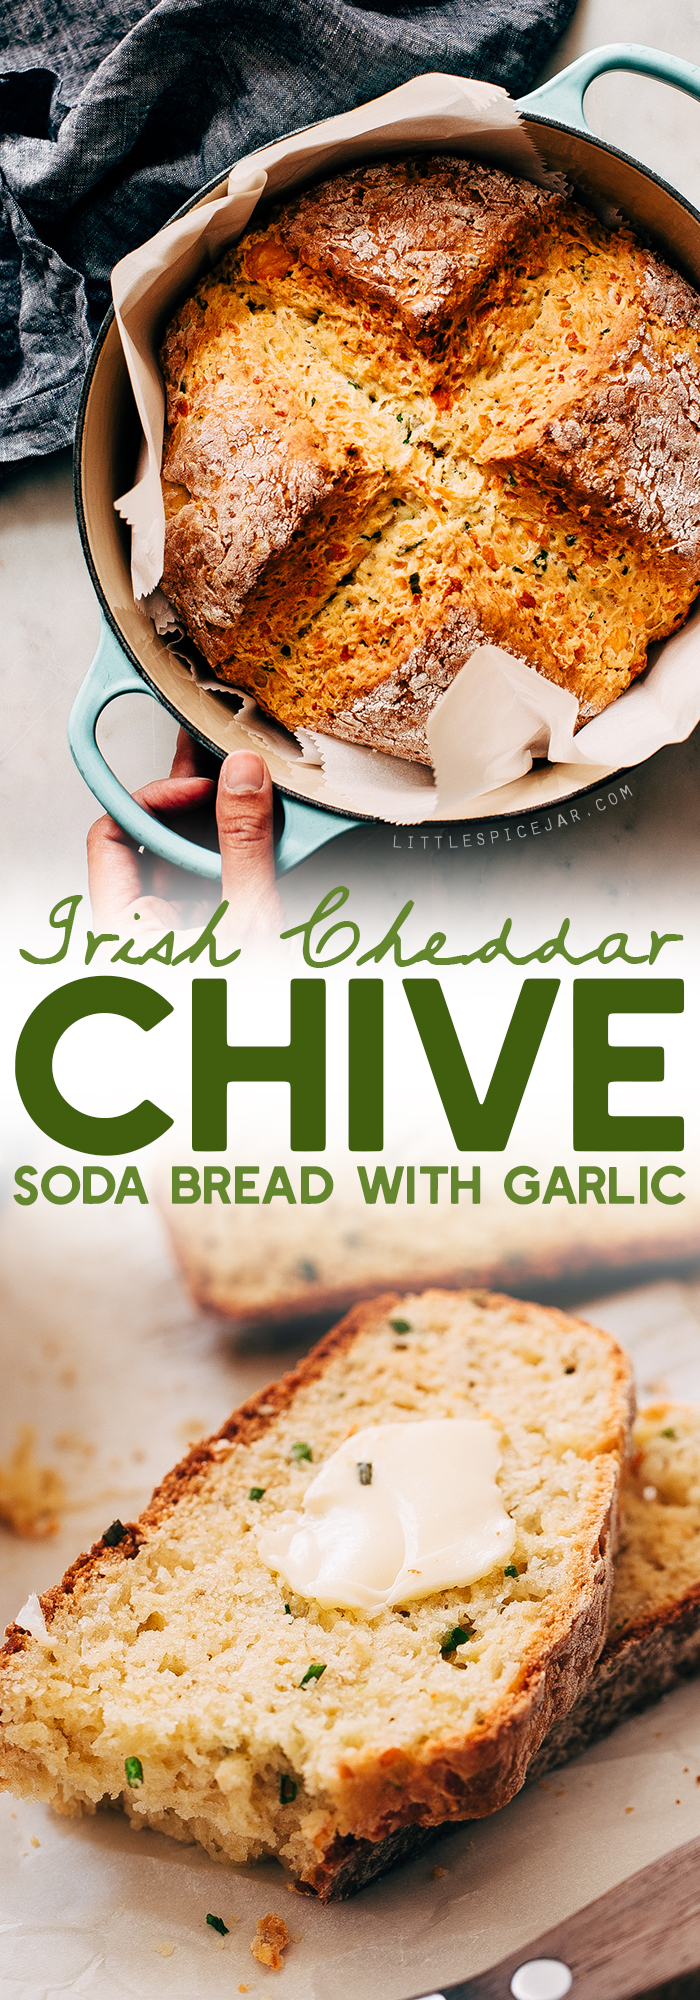 Garlic Irish Cheddar Chive Soda Bread - learn how to make a savory soda bread! This recipe is easy and takes just 10 minutes of hands on time! #cheddarsodabread #chivesodabread #garlicsodabread #irishsodabread #sodabread | Littlespicejar.com